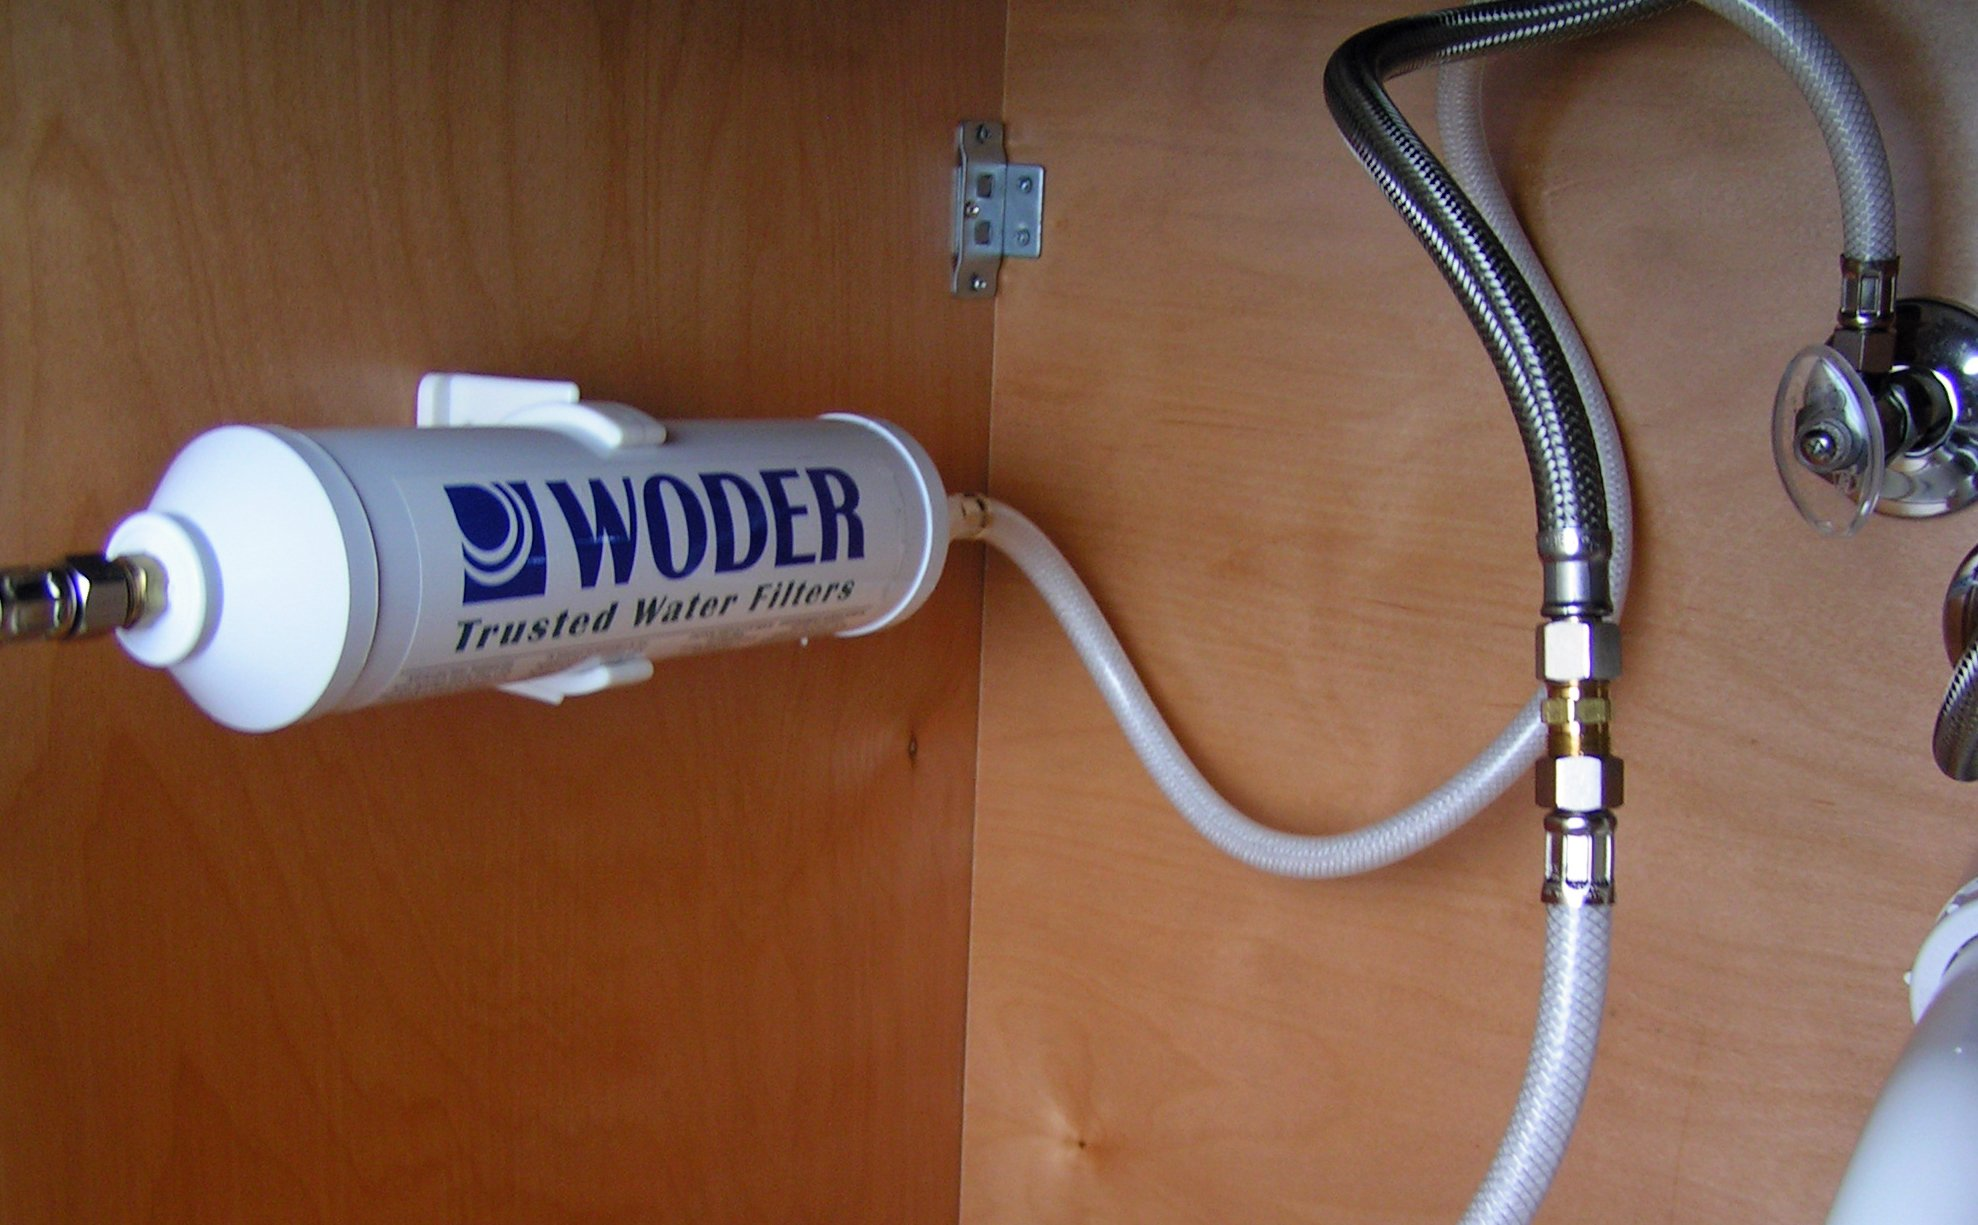 Woder 10K Ultra High Capacity Direct Connect Water Filtration System — Under Sink, Premium Class 1. Removes 99.99% of Contaminants for Safe, Fresh and Crisp Water, USA-Made by Woder (Image #4)